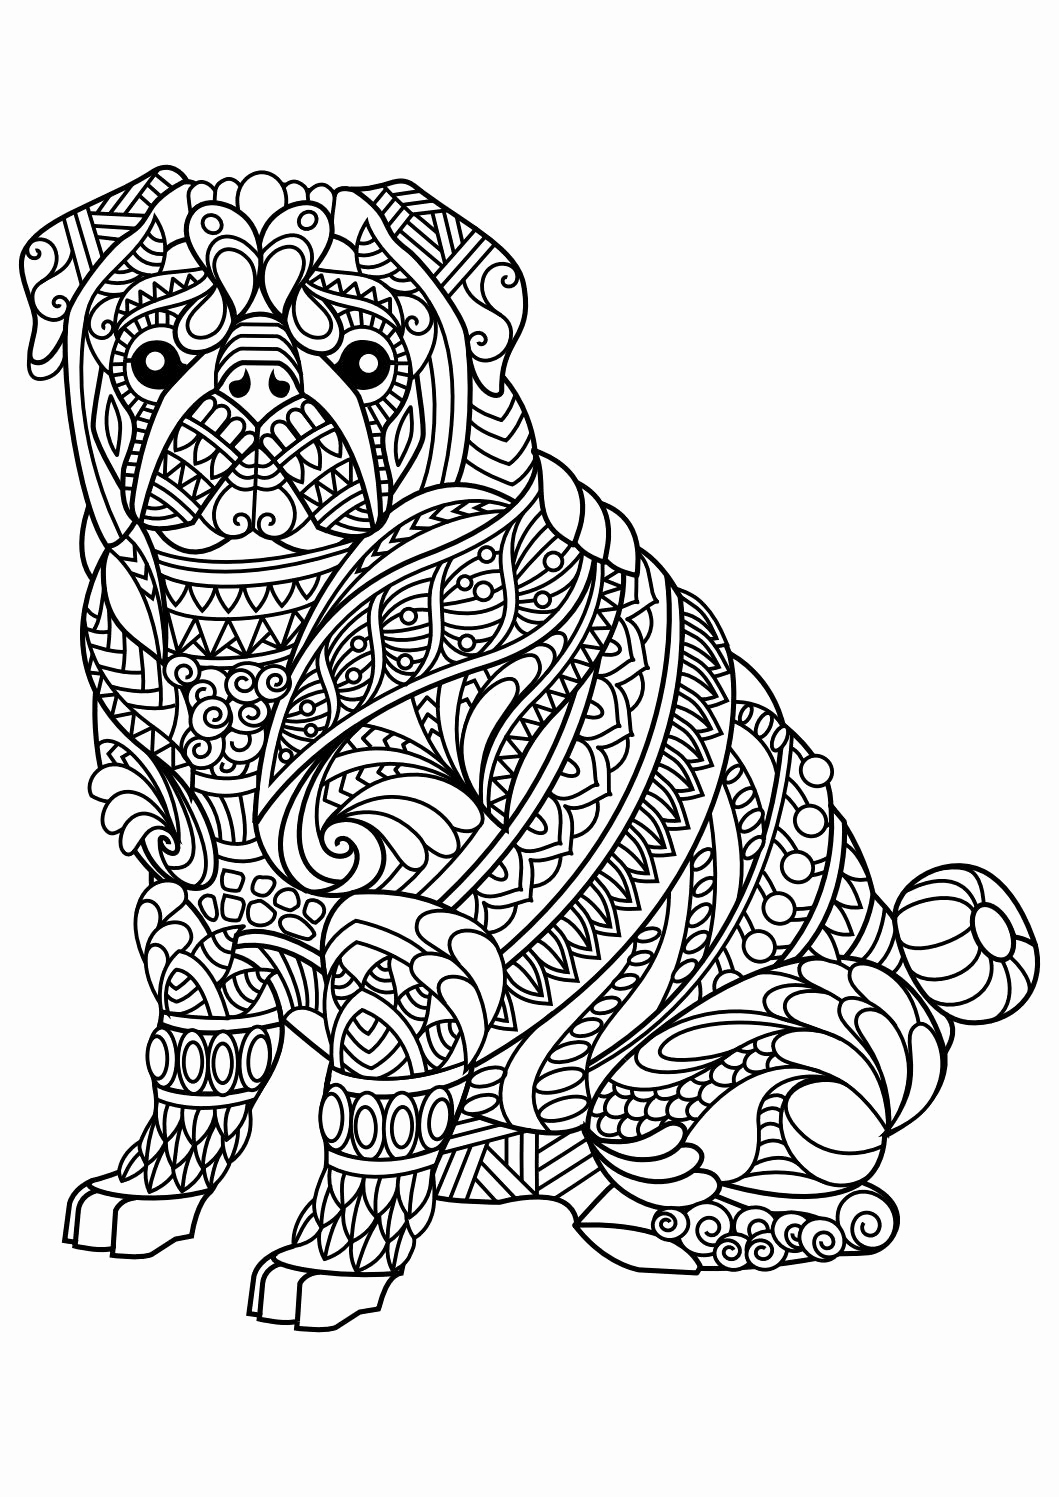 1059x1497 Coloring Book Free New Animal Coloring Pages Pdf Adult Coloring